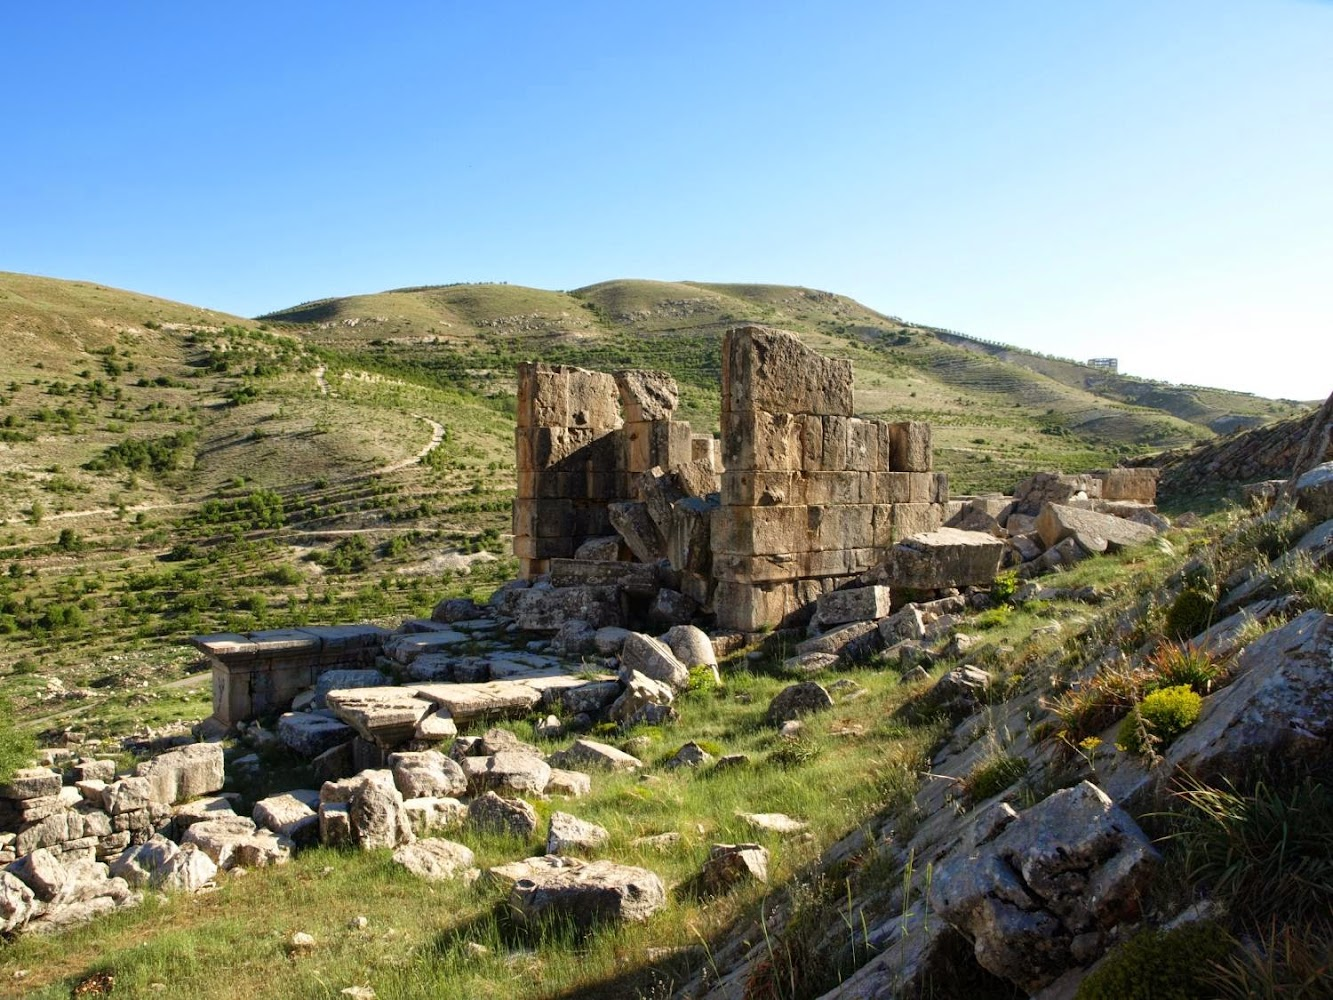 Lebanon: The archaeology of conflict-damaged sites